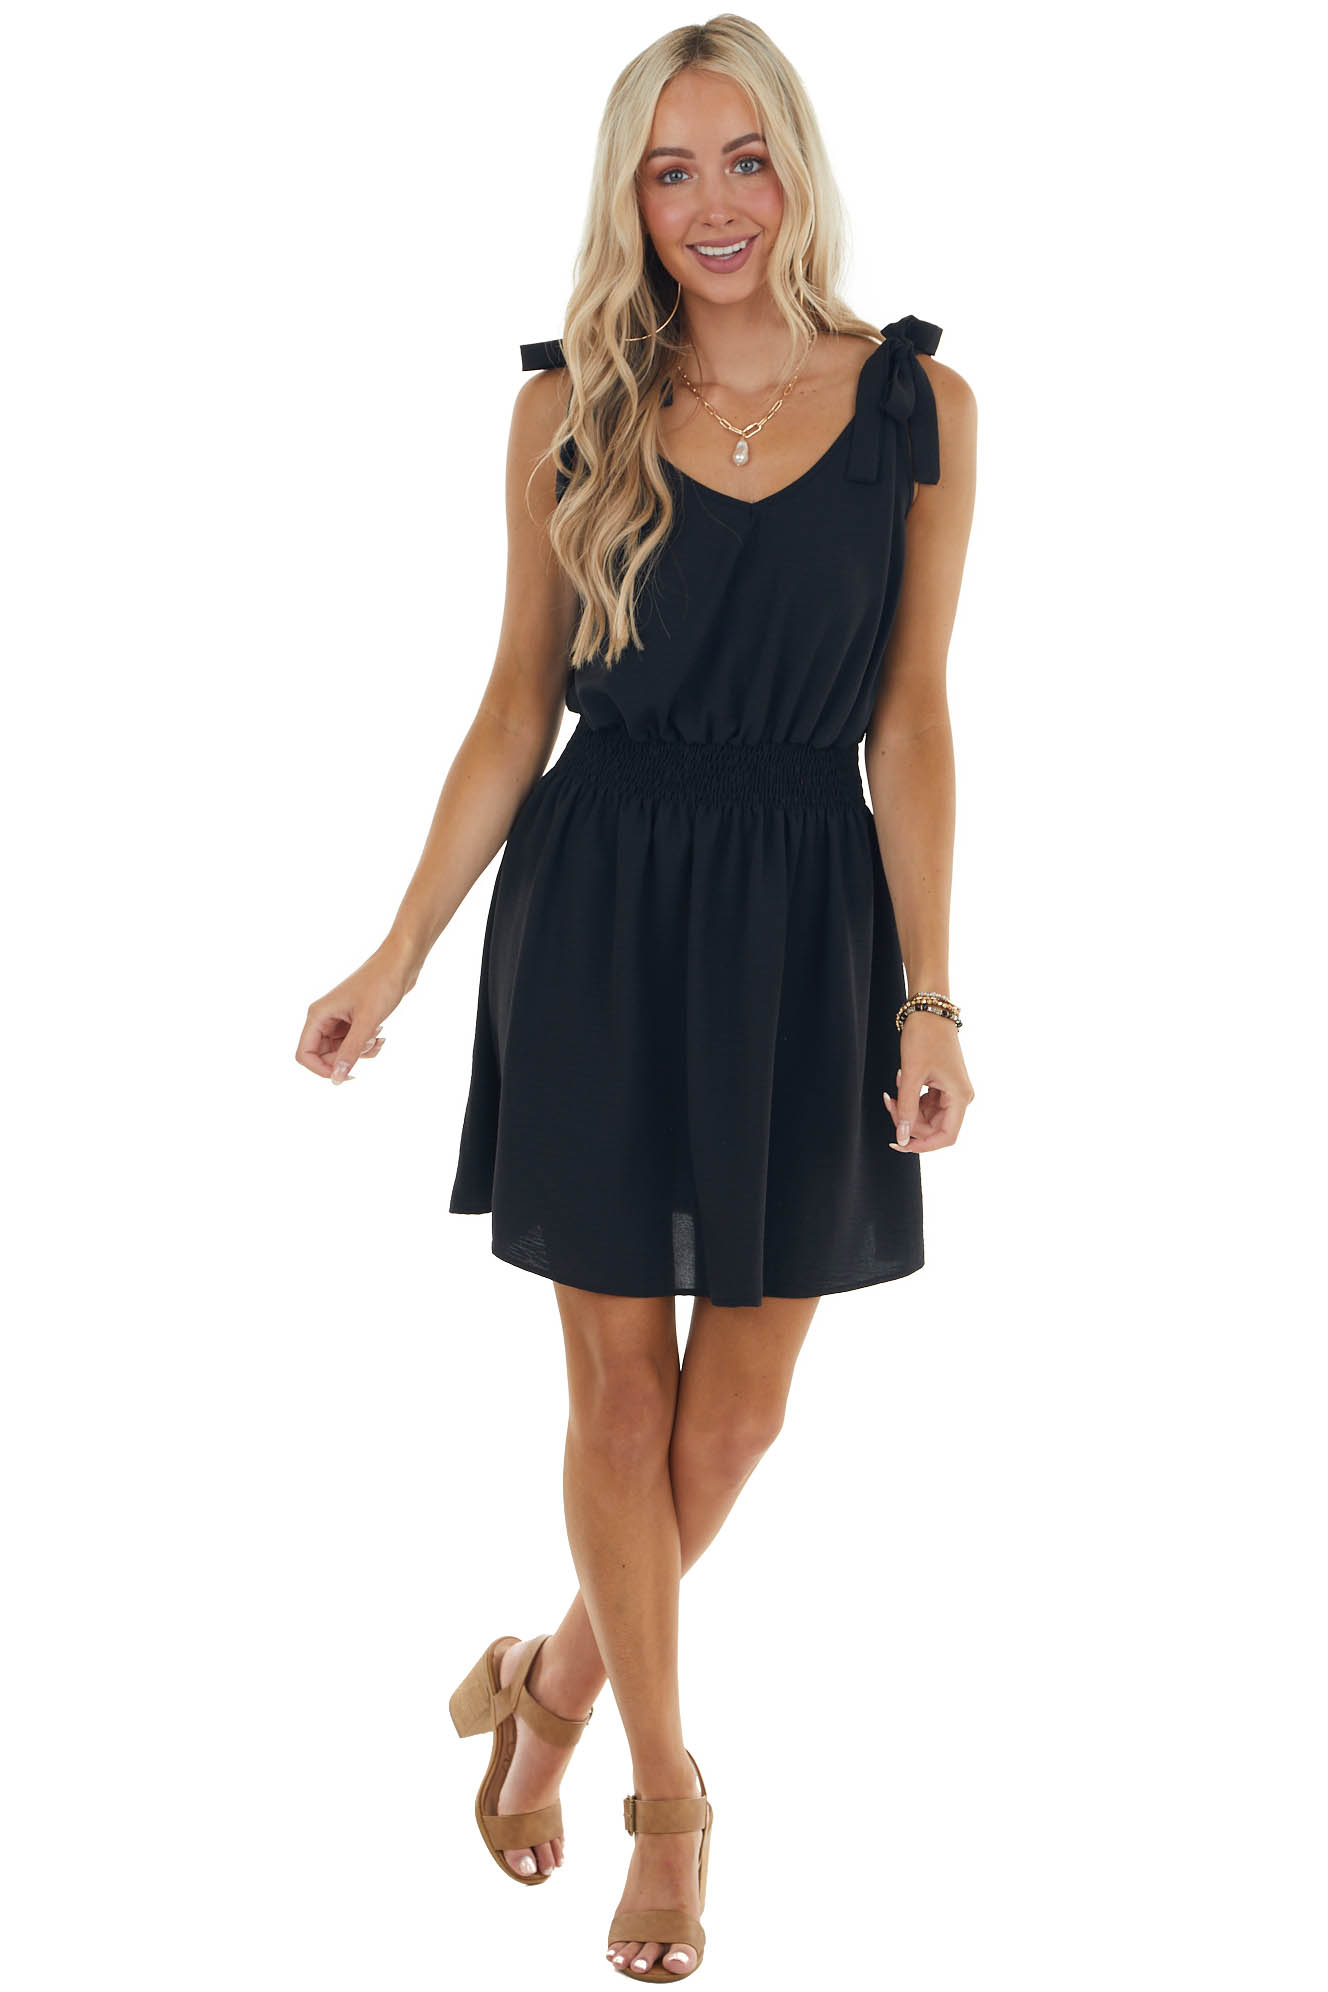 Black Woven Mini Dress with Smocked Waist and Tie Straps